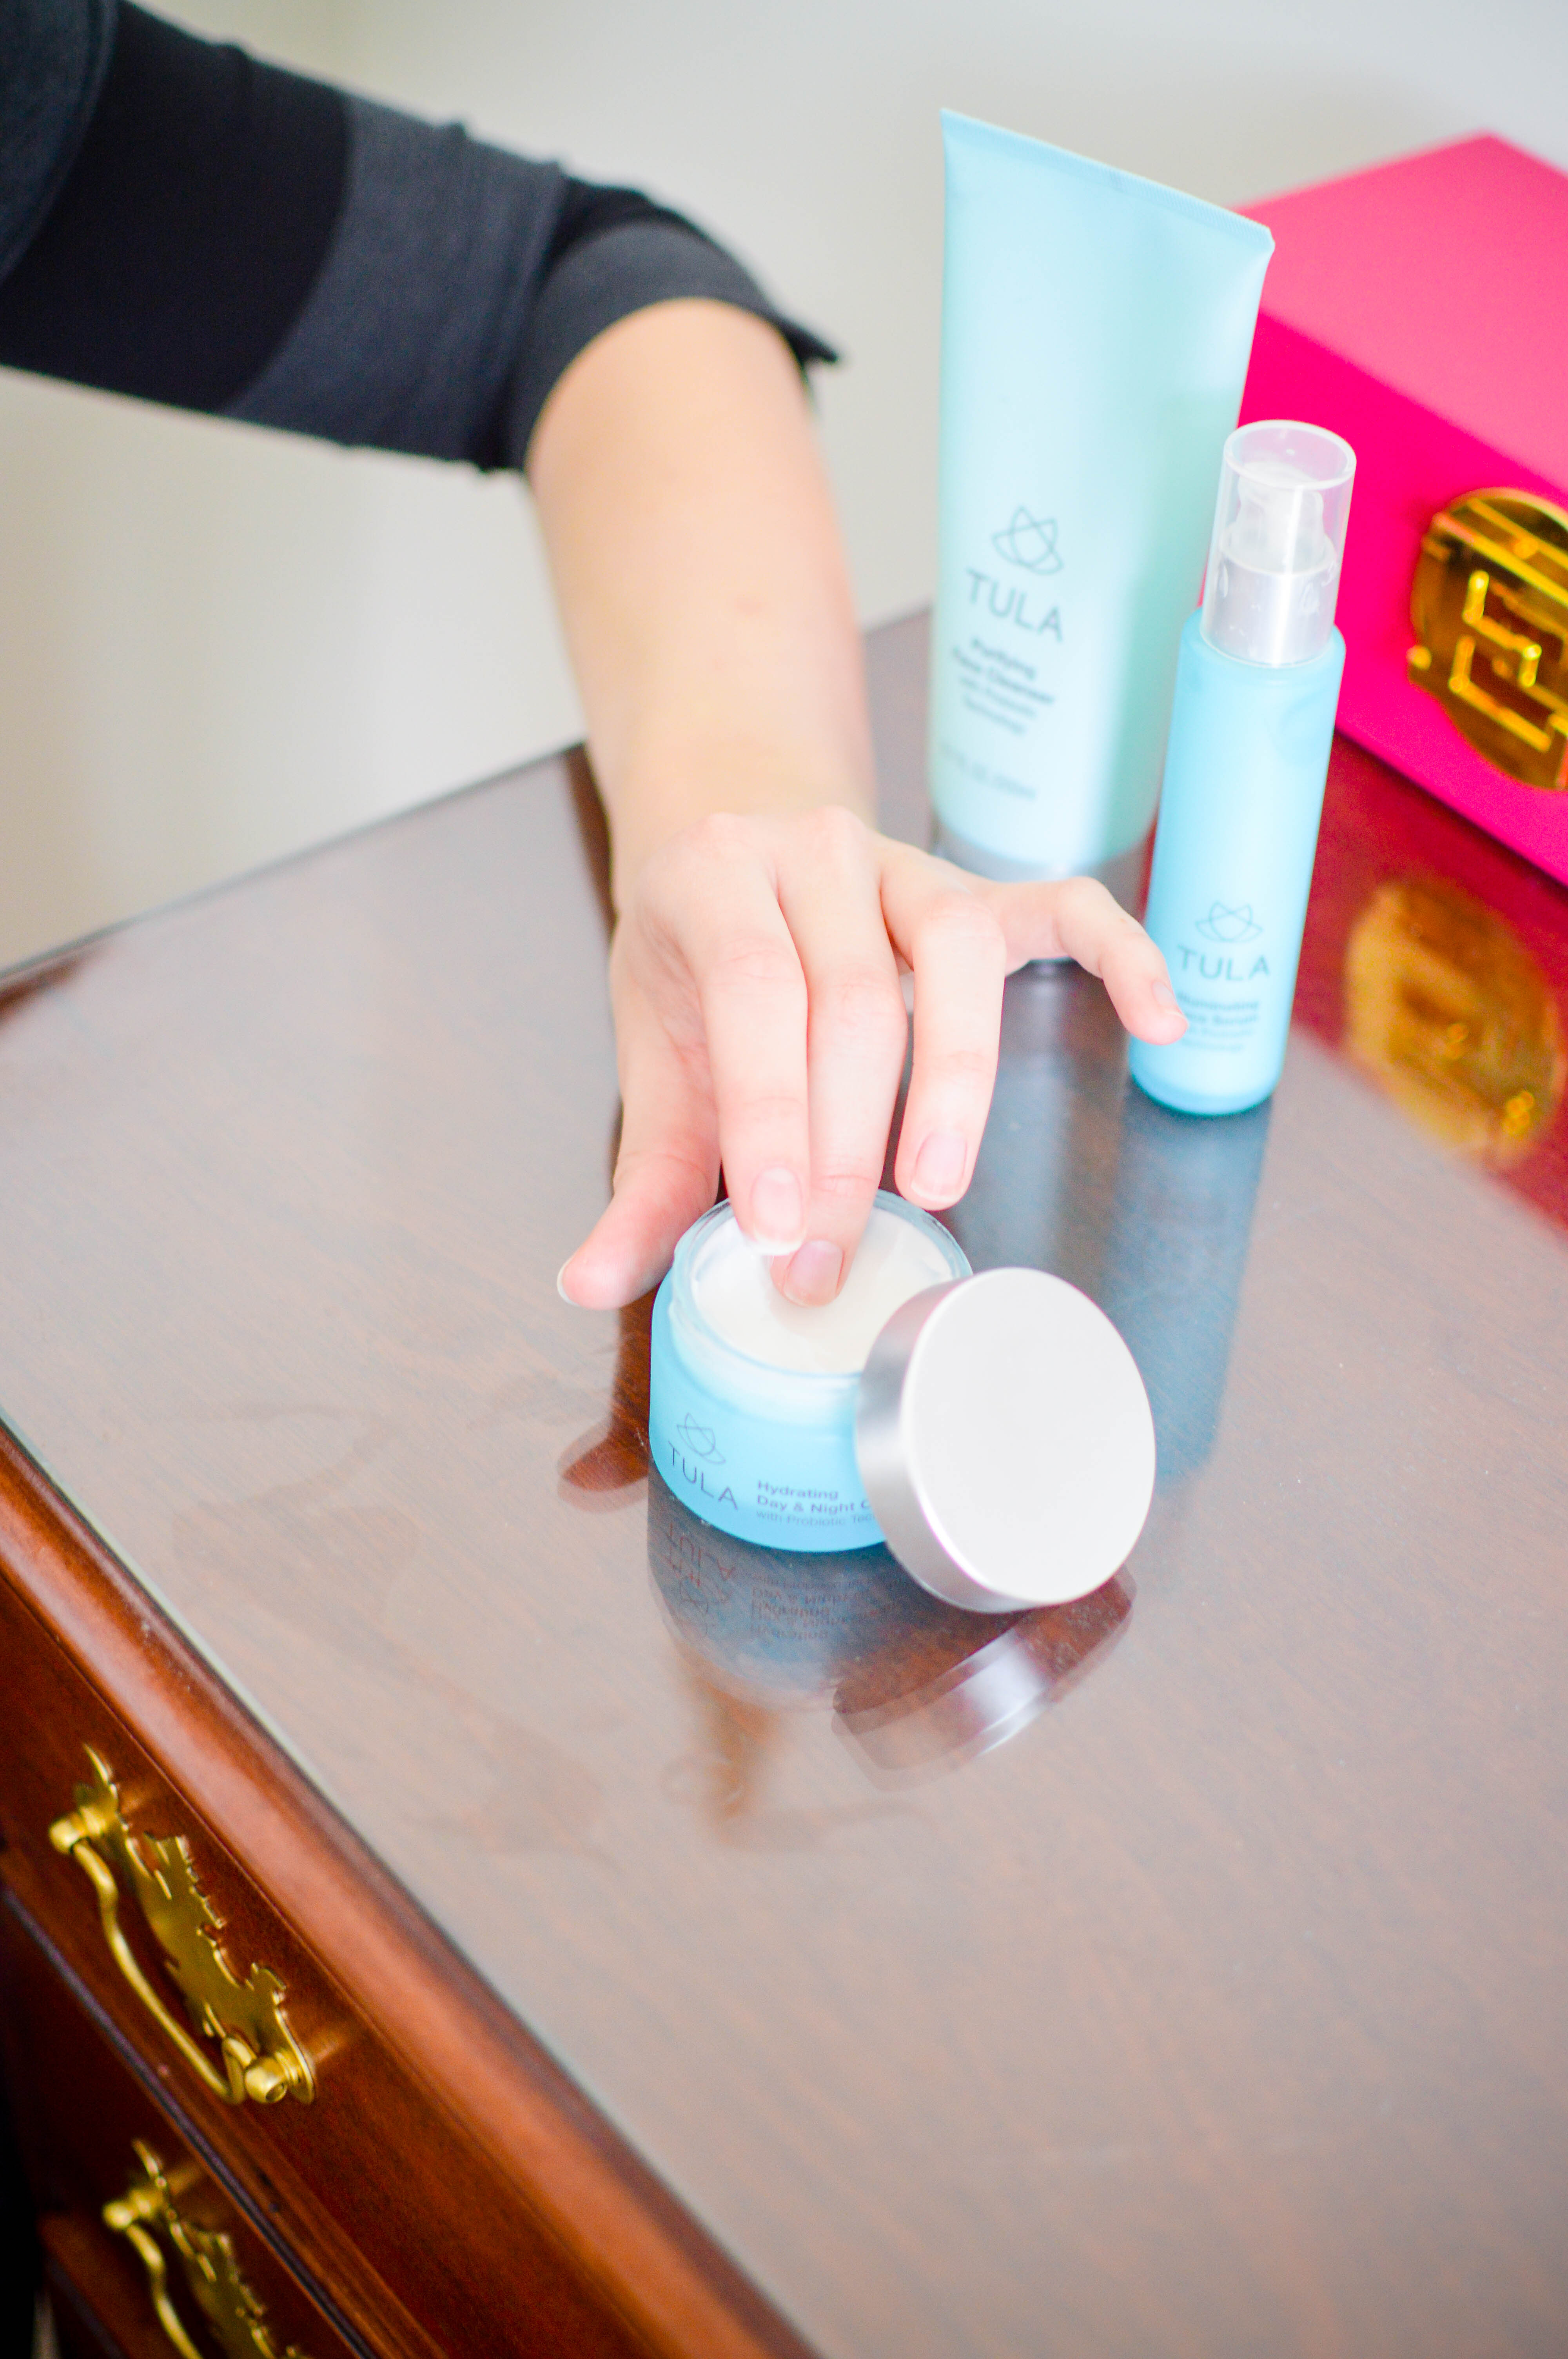 Dealing With Pregnancy Acne Using Tula | Breezing Through